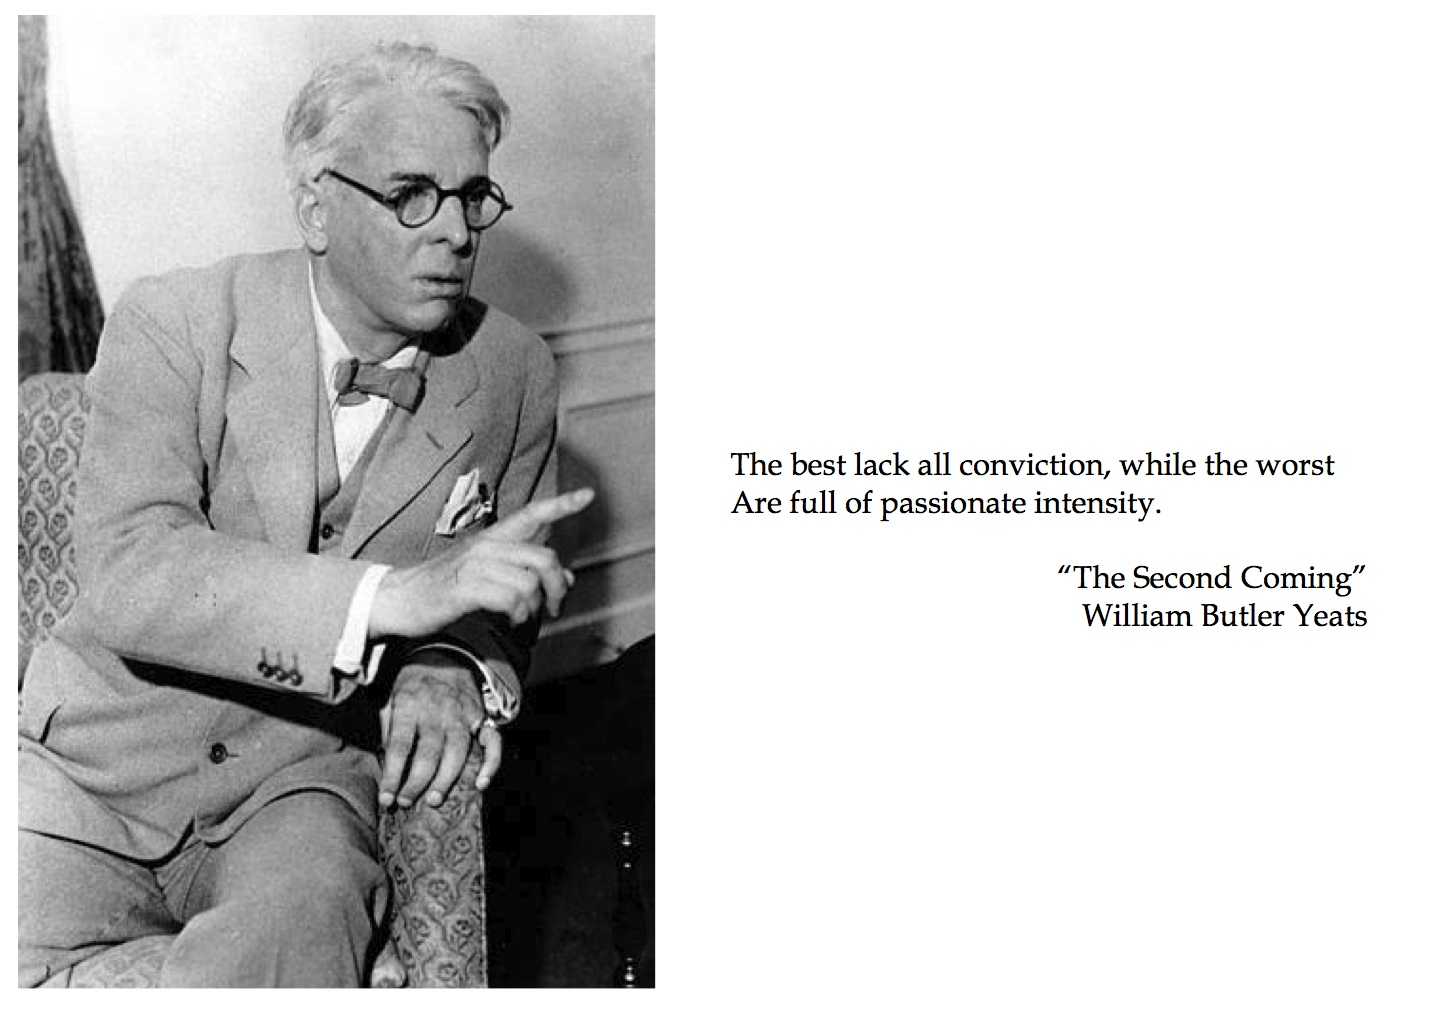 an analysis of the second coming by william butler Yeatsa study of selected poems by wb yeats analysis• ―vivid faces‖ -these faces lack description showing their unimportance• ―a terrible beauty is born‖ -the people of ireland coming together to the second coming william butler yeats andre.